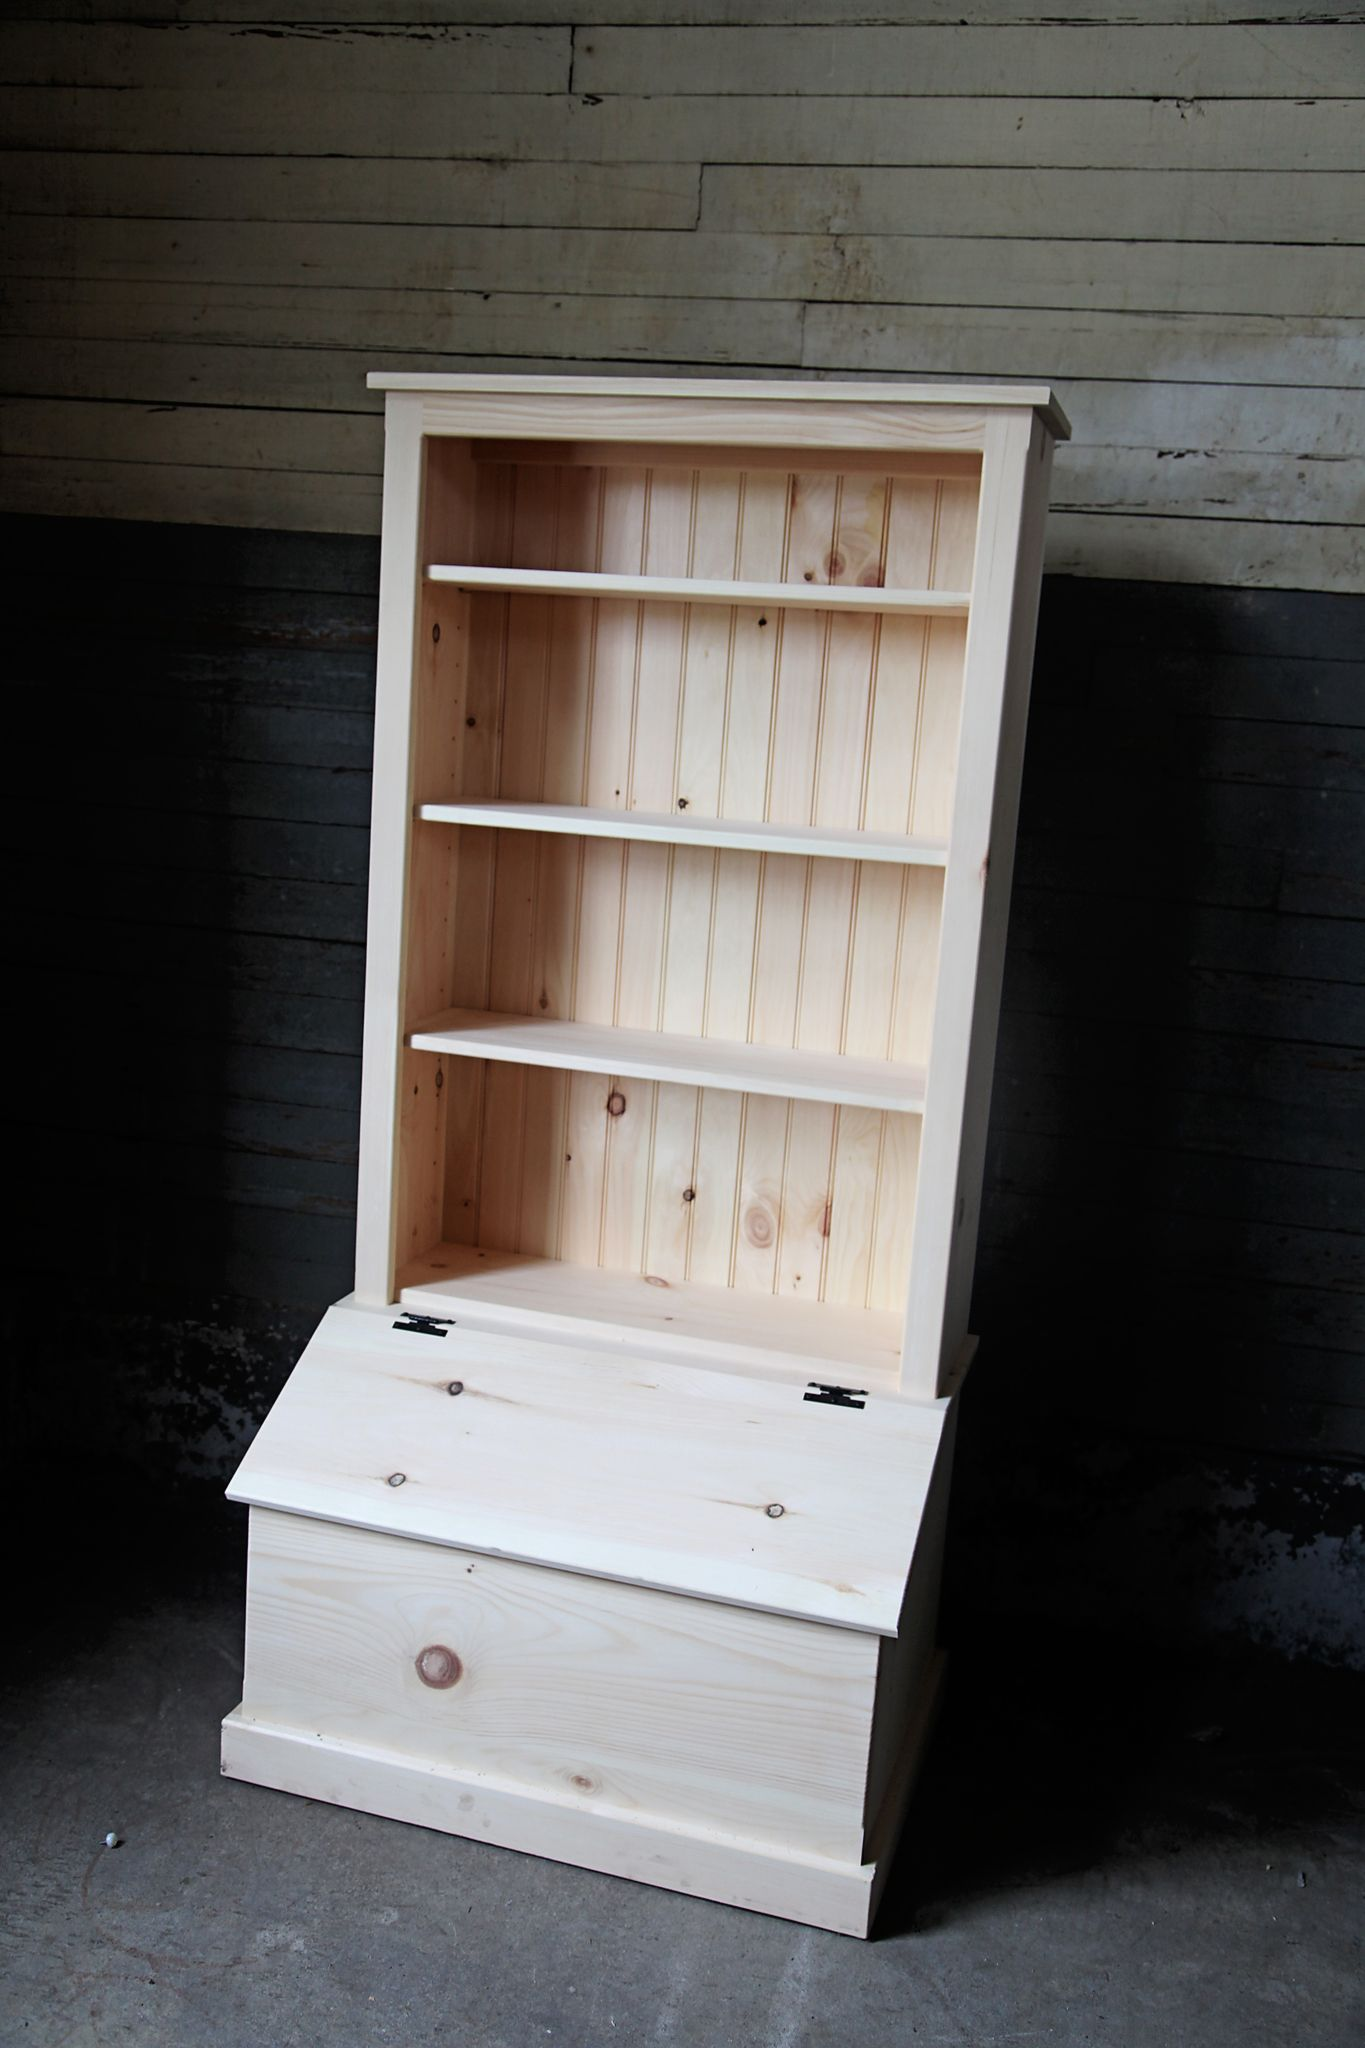 Quality Amish Handmade Toy Box Bookcase Combo Sold Online Or In Stores At Peaceful Valley Amish Furniture For 349 Diy Toy Storage Wooden Toy Boxes Diy Toy Box